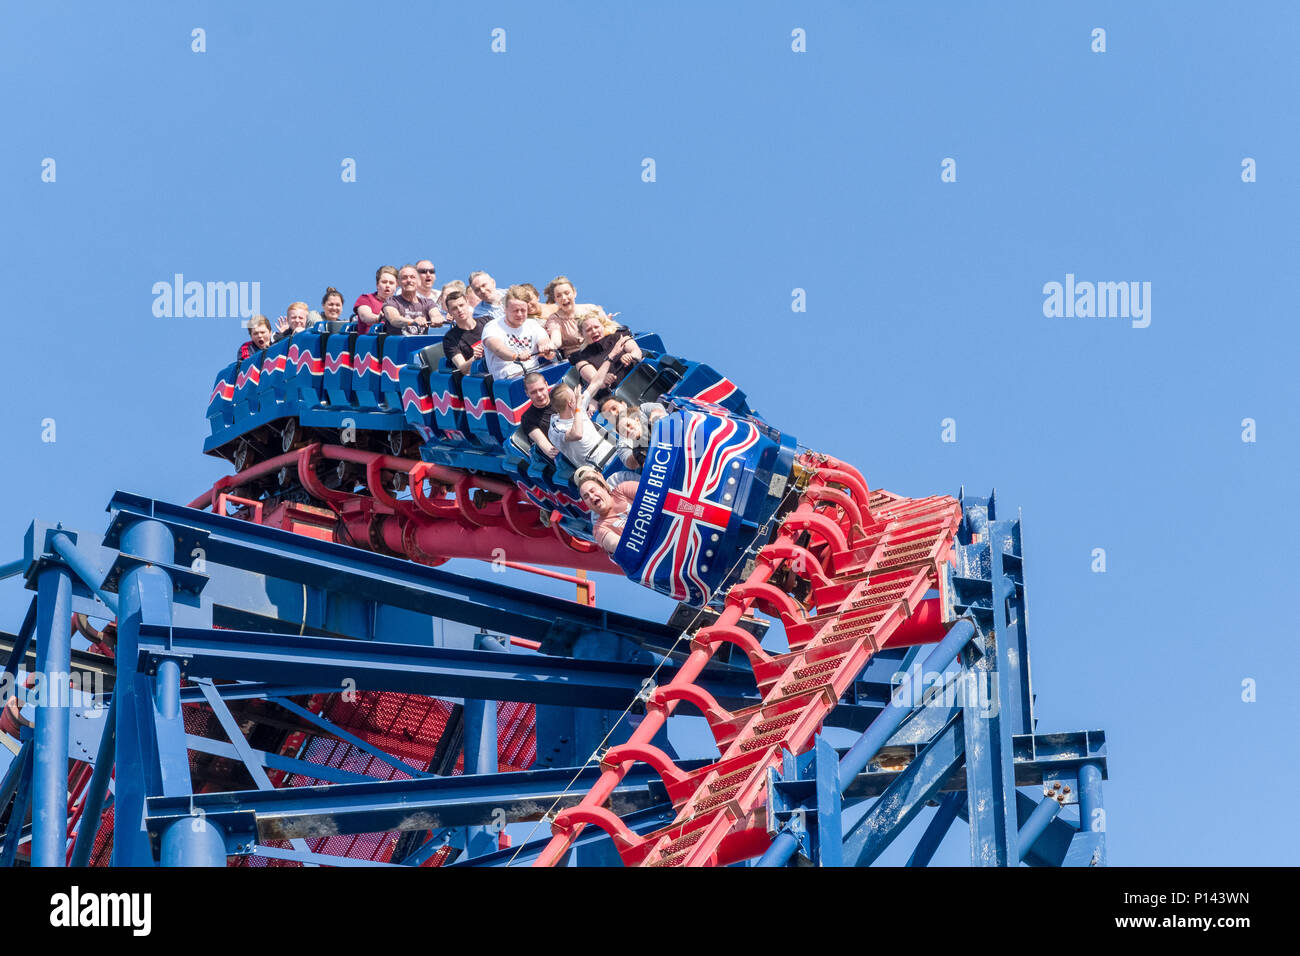 Les gens en haut de la grande montagne russe, Pleasure Beach Blackpool, Lancashire, England, UK Photo Stock